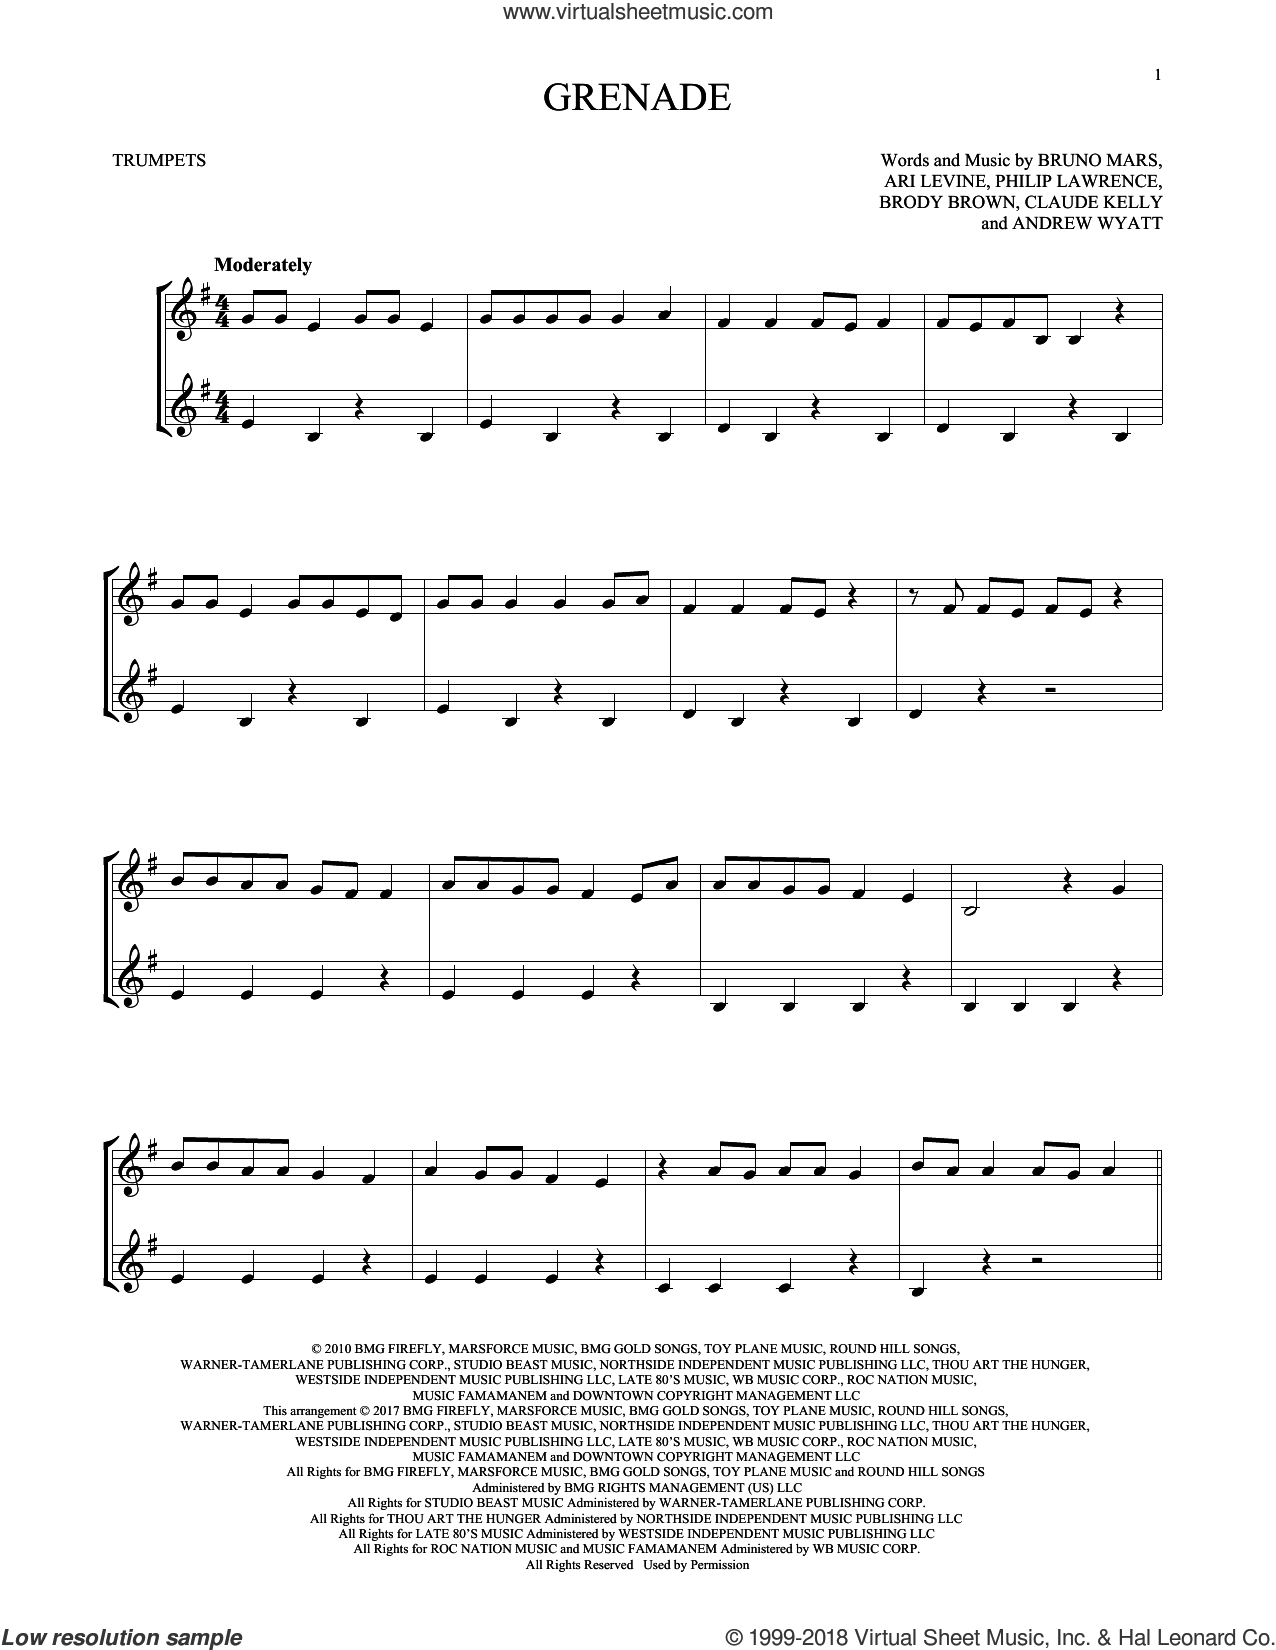 Grenade sheet music for two trumpets (duet, duets) by Bruno Mars, Andrew Wyatt, Ari Levine, Brody Brown, Claude Kelly and Philip Lawrence, intermediate skill level